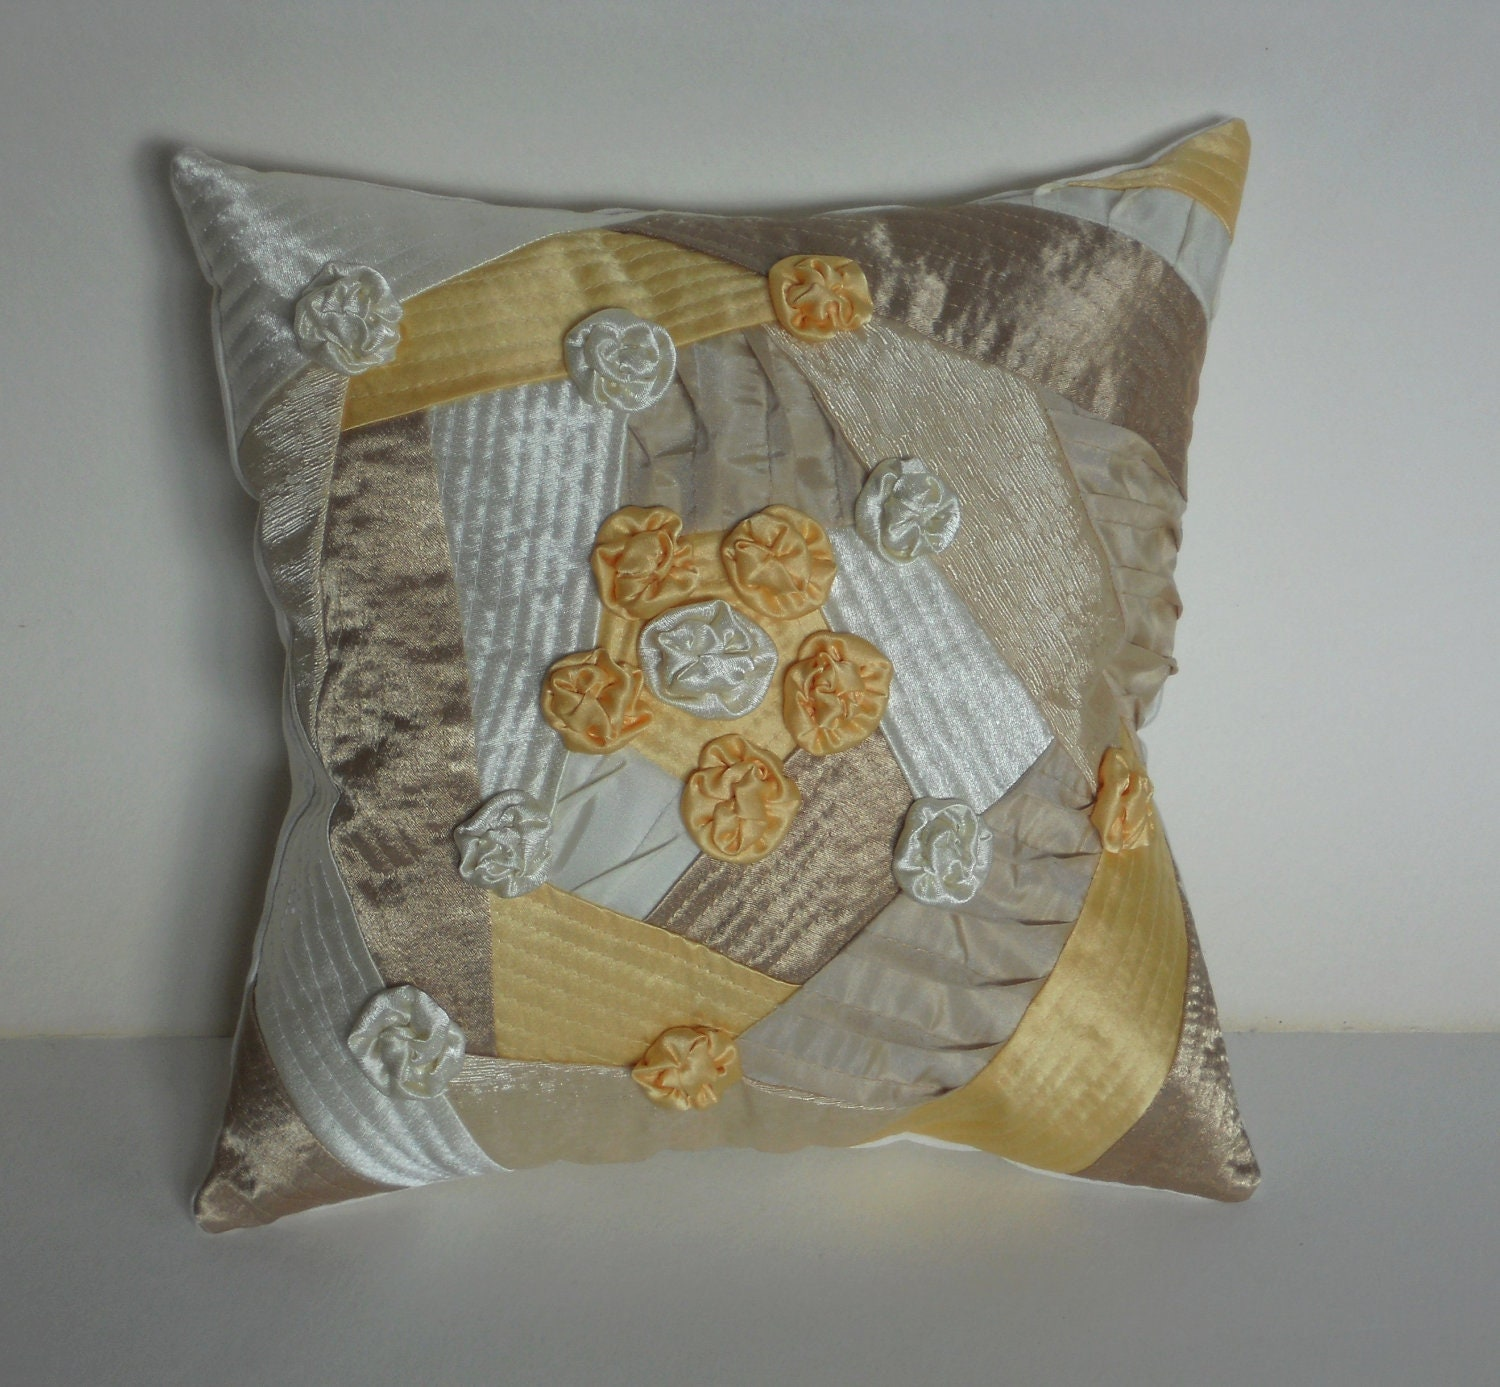 Decorative Pillows Etsy : Decorative throw pillow cushion handmade roses yellow beige